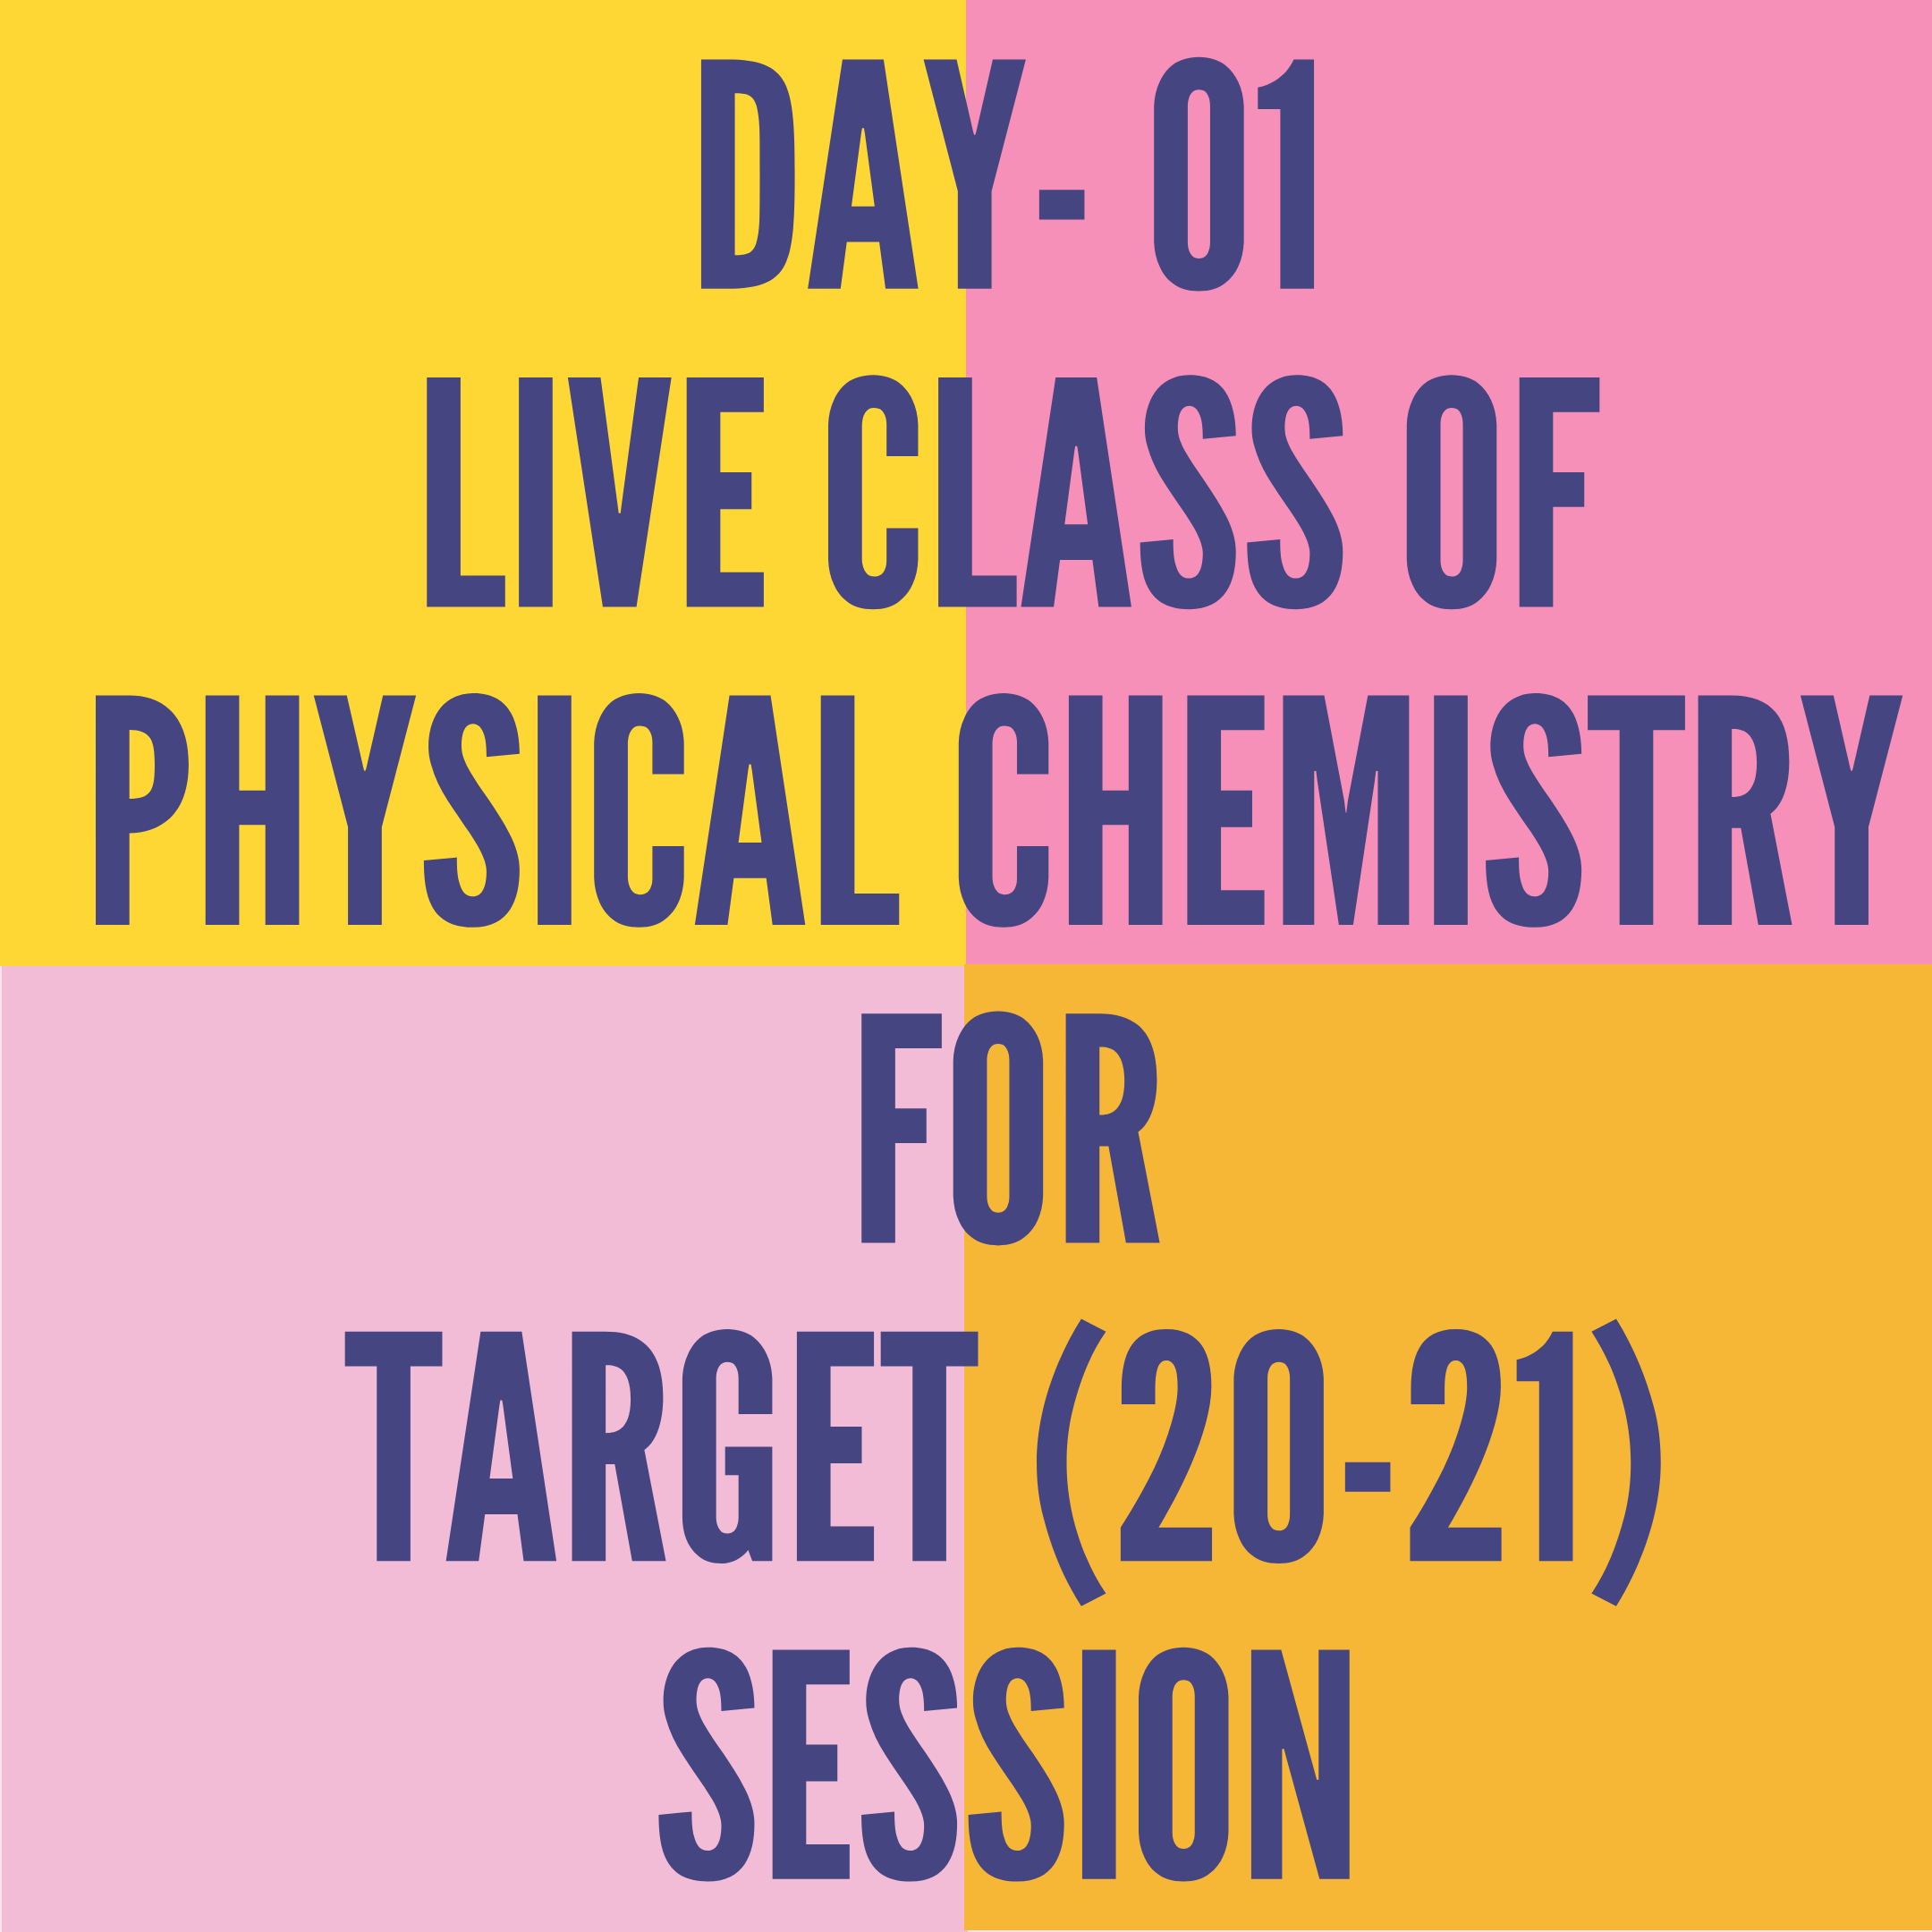 DAY- 01- LIVE CLASS OF PHYSICAL CHEMISTRY FOR TARGET (20-21) SESSION